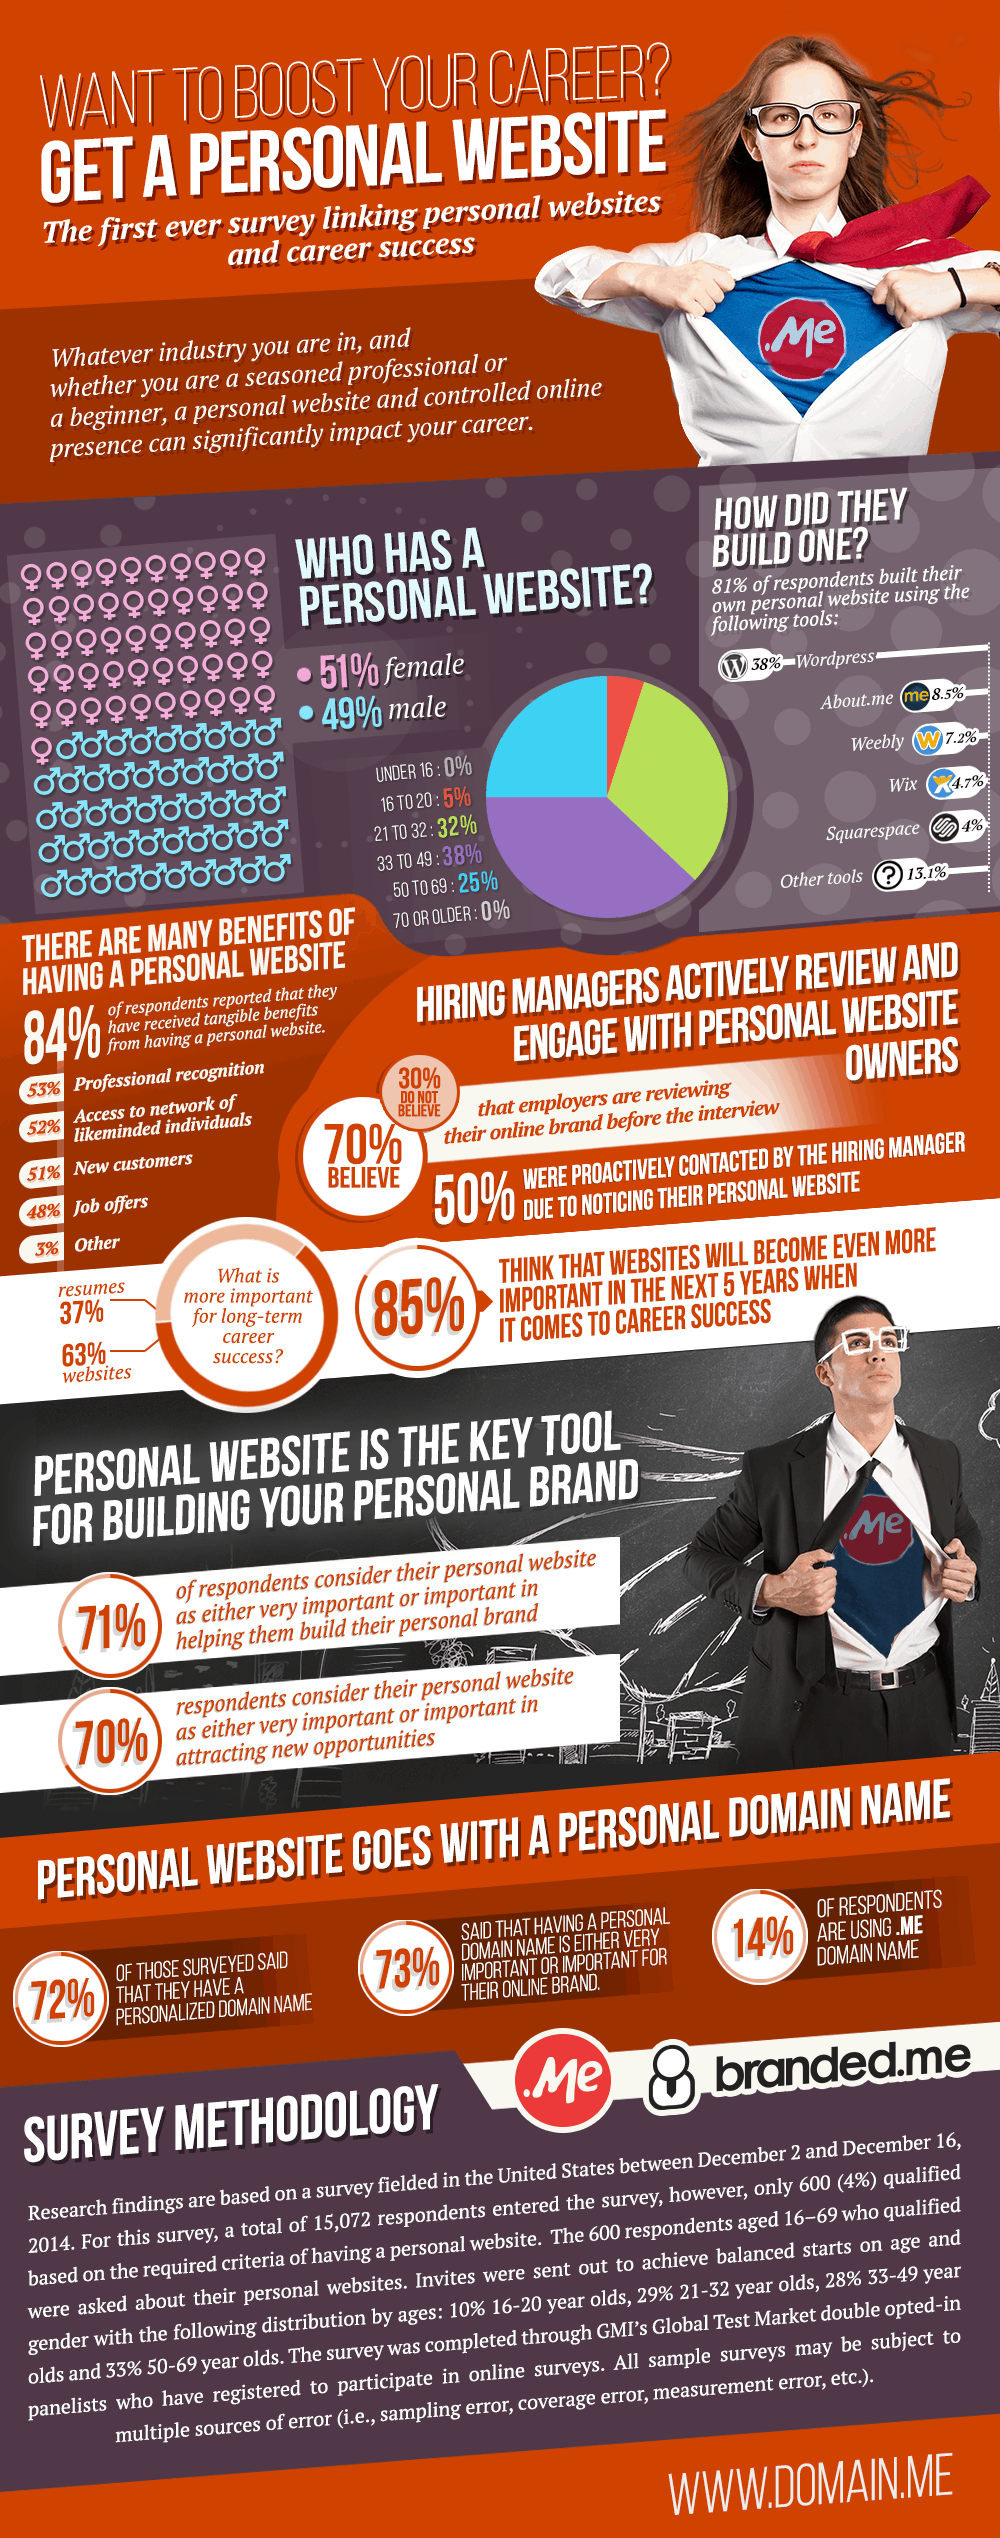 Infographic depicting the link between personal websites and career sucess